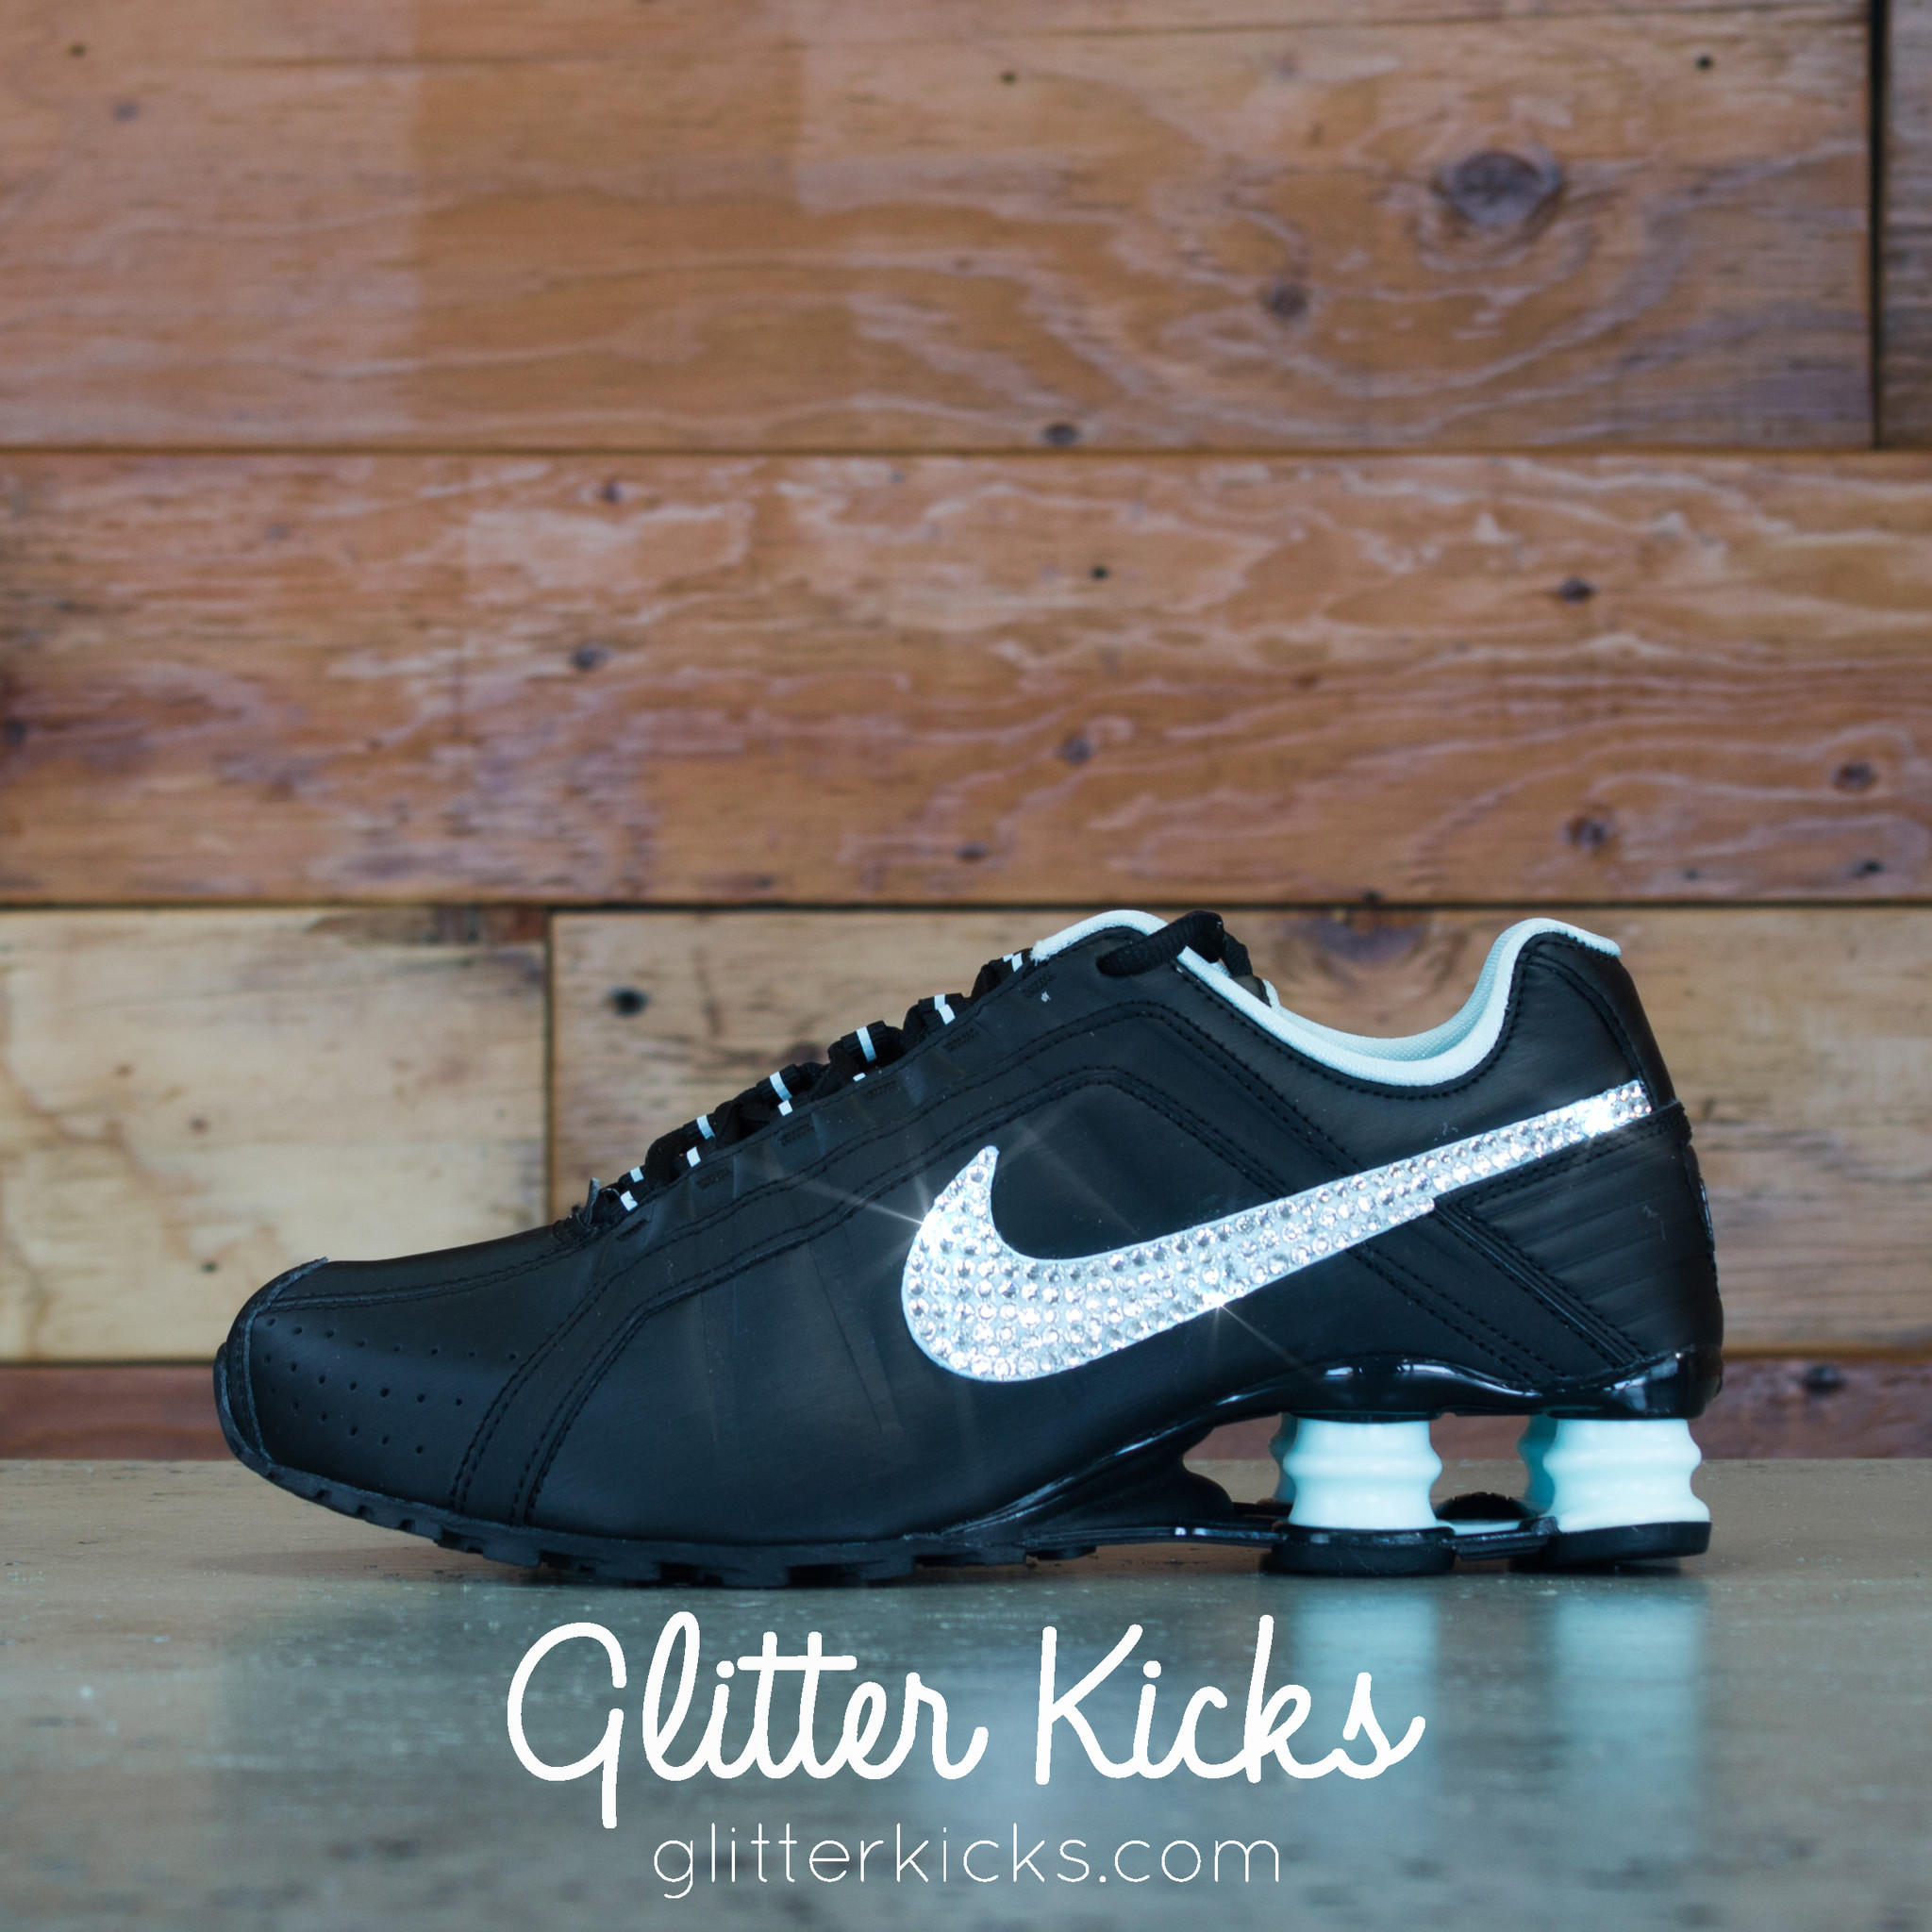 Nike Shox Current Glitter Kicks Running from Glitter Kicks e2df1f108f